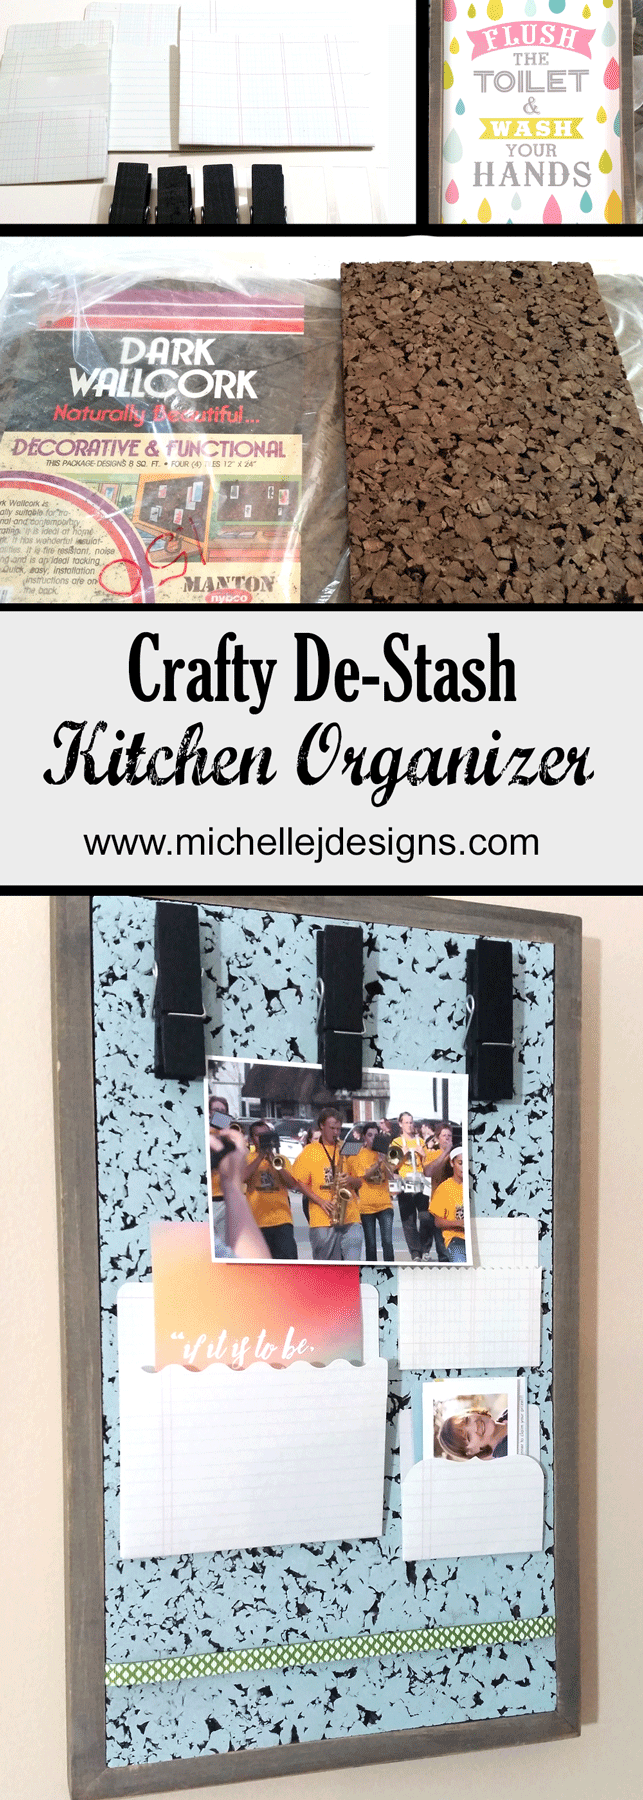 What do I get when I mix a lot of crafty stash items together? A kitchen organizer! Come see this kitchen organization board complete with pockets and clothes pins - www.michellejdesigns.com